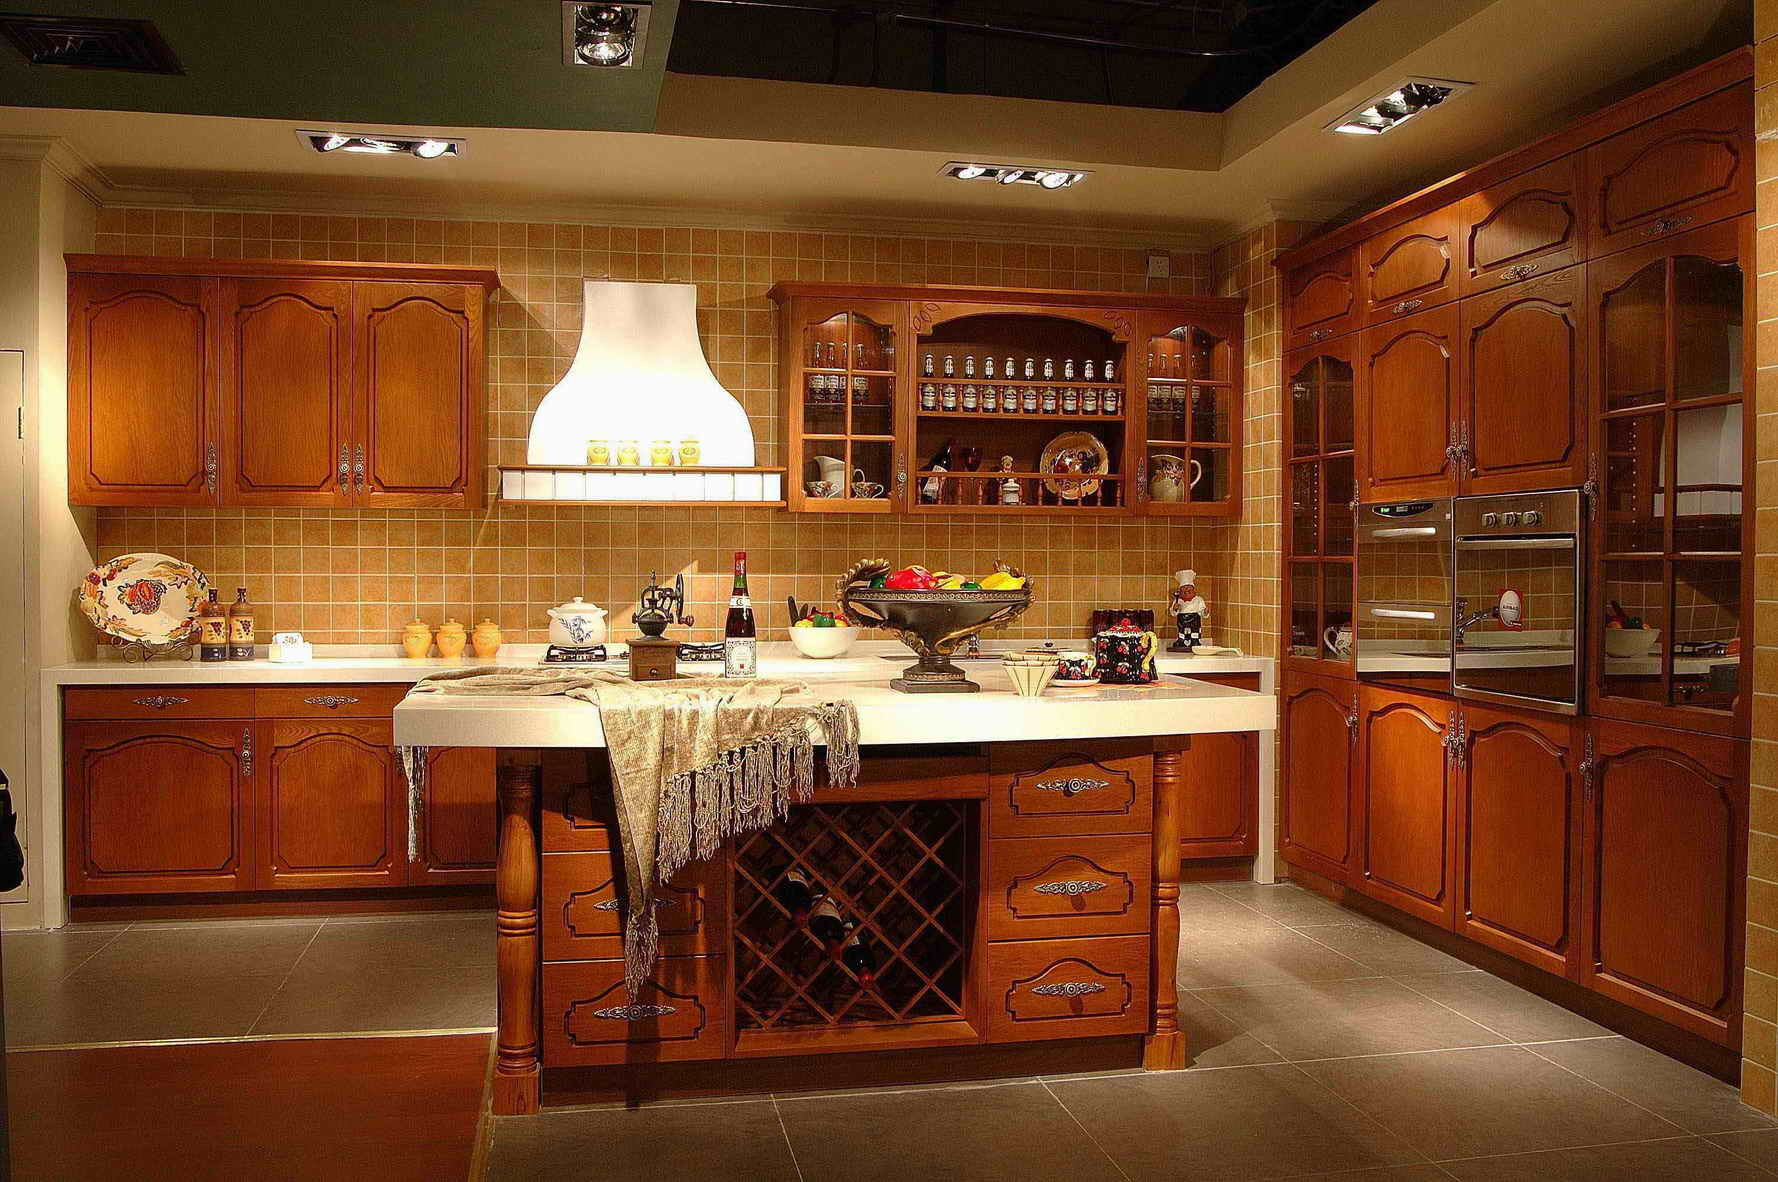 Painting Kitchen Cabinets - Best Interior Painting Tips